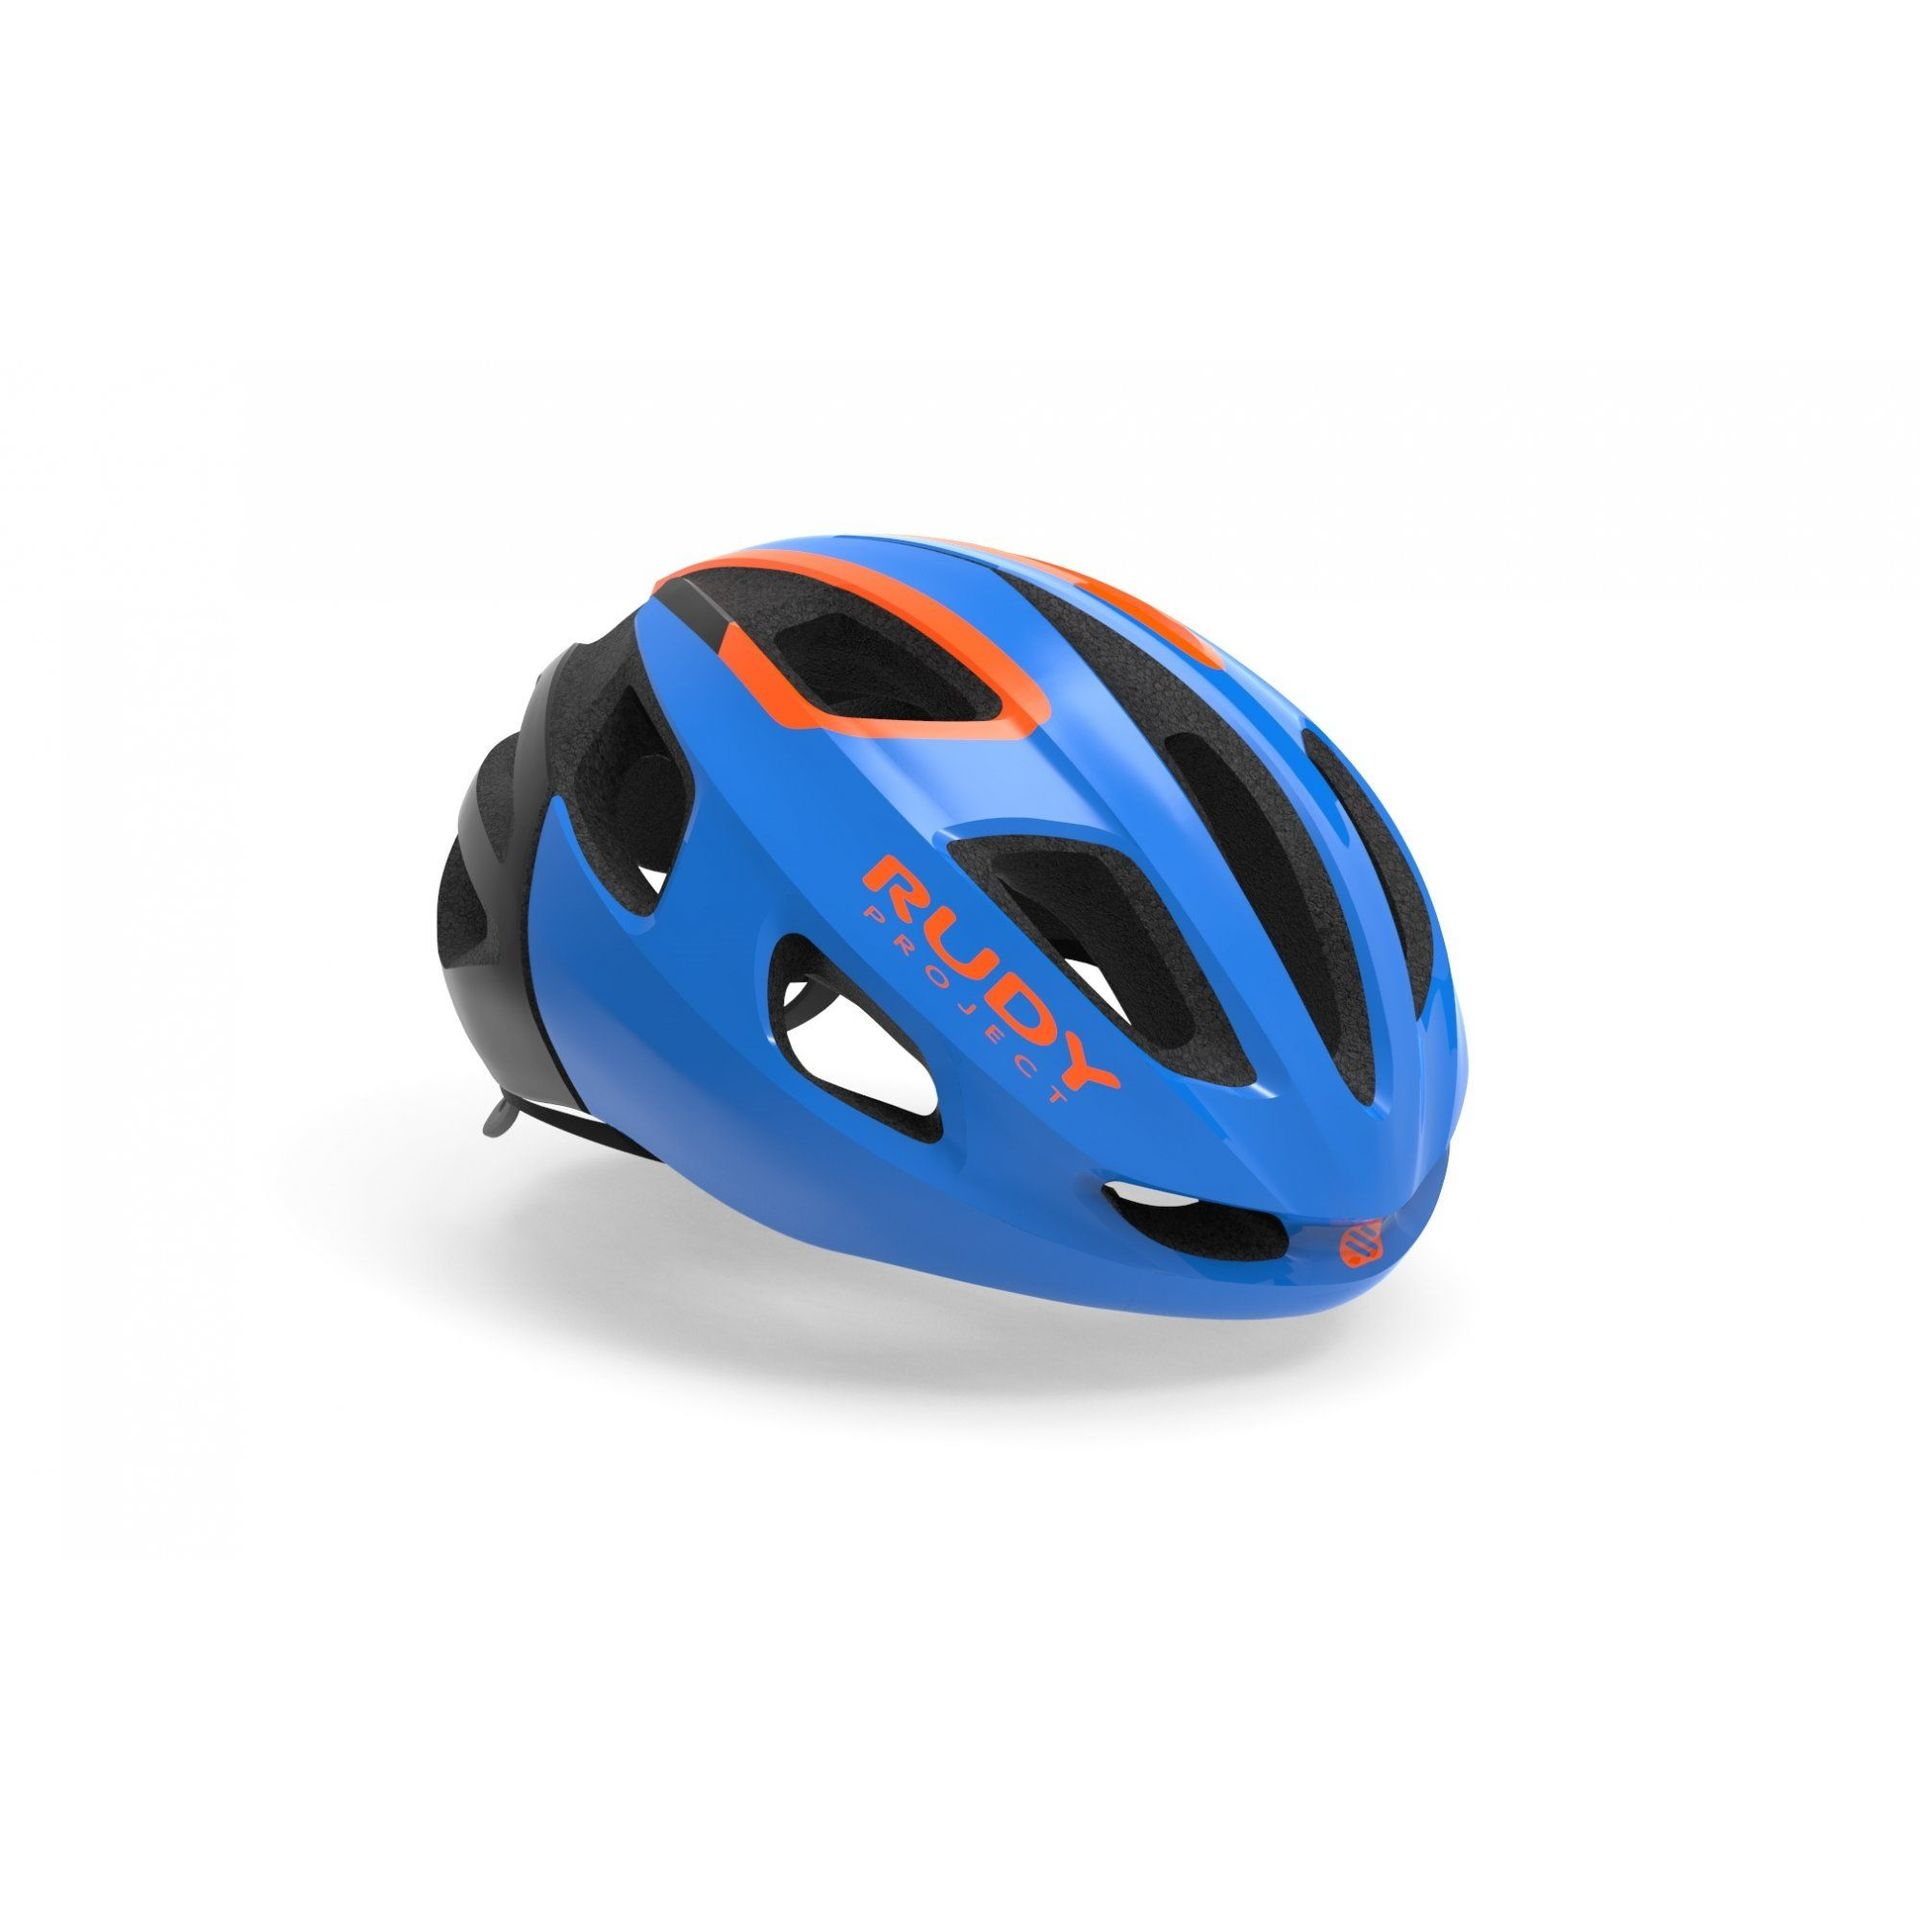 KASK ROWEROWY RUDY PROJECT STRYM BLUE|ORANGE HL64006 1